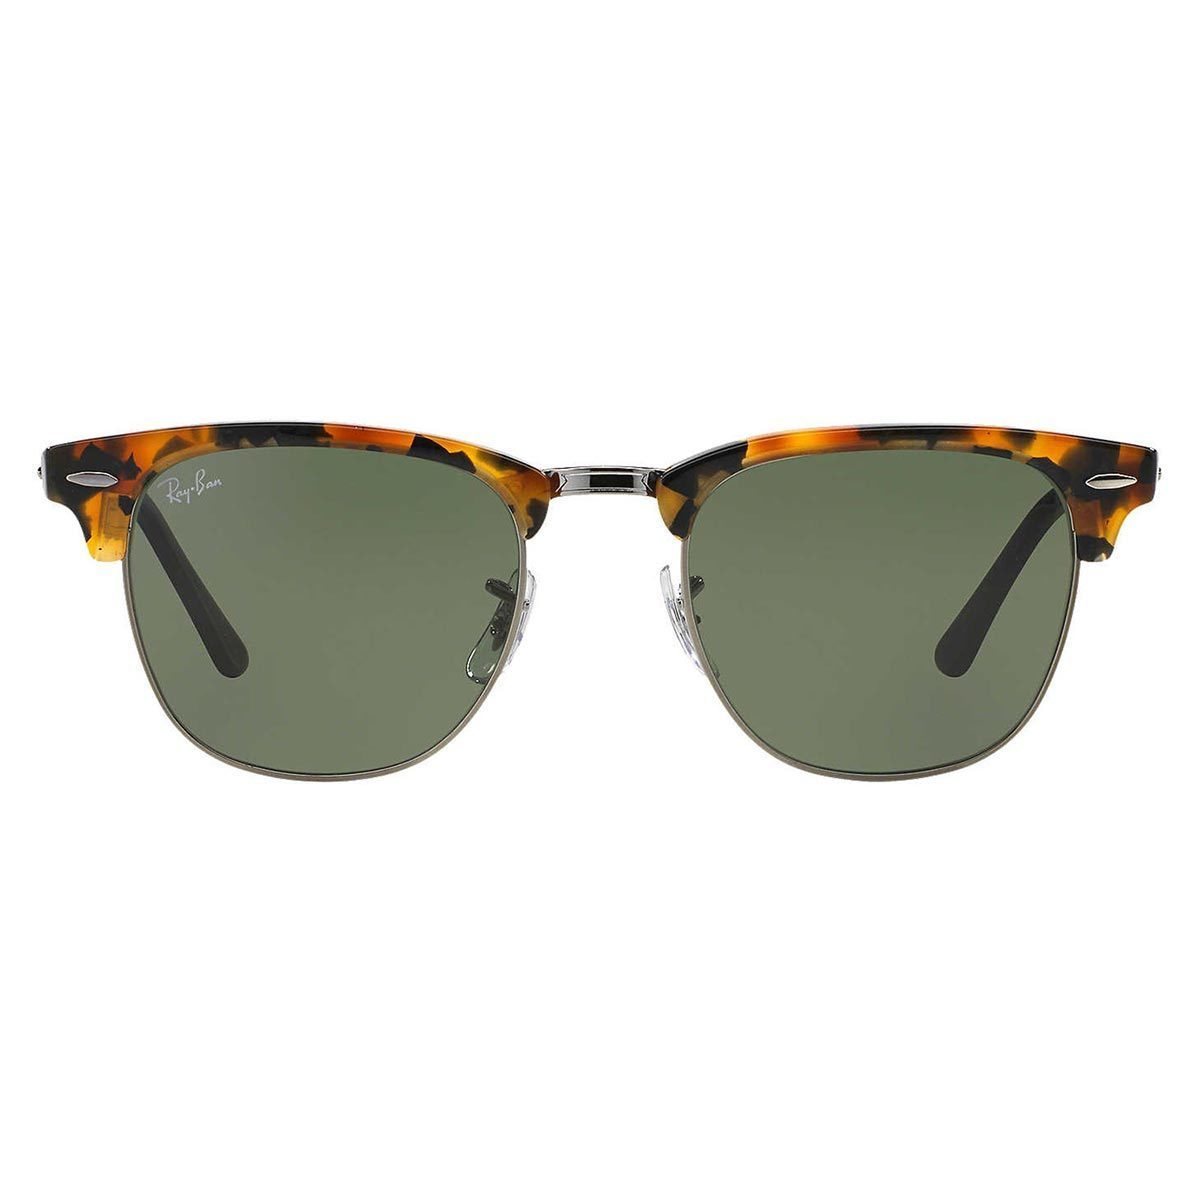 0fbe03e905f Shop Ray-Ban Clubmaster Fleck RB3016 1157 Unisex Tortoise Black Frame Green  Classic Lens Sunglasses - Black - Free Shipping Today - Overstock - 10482671